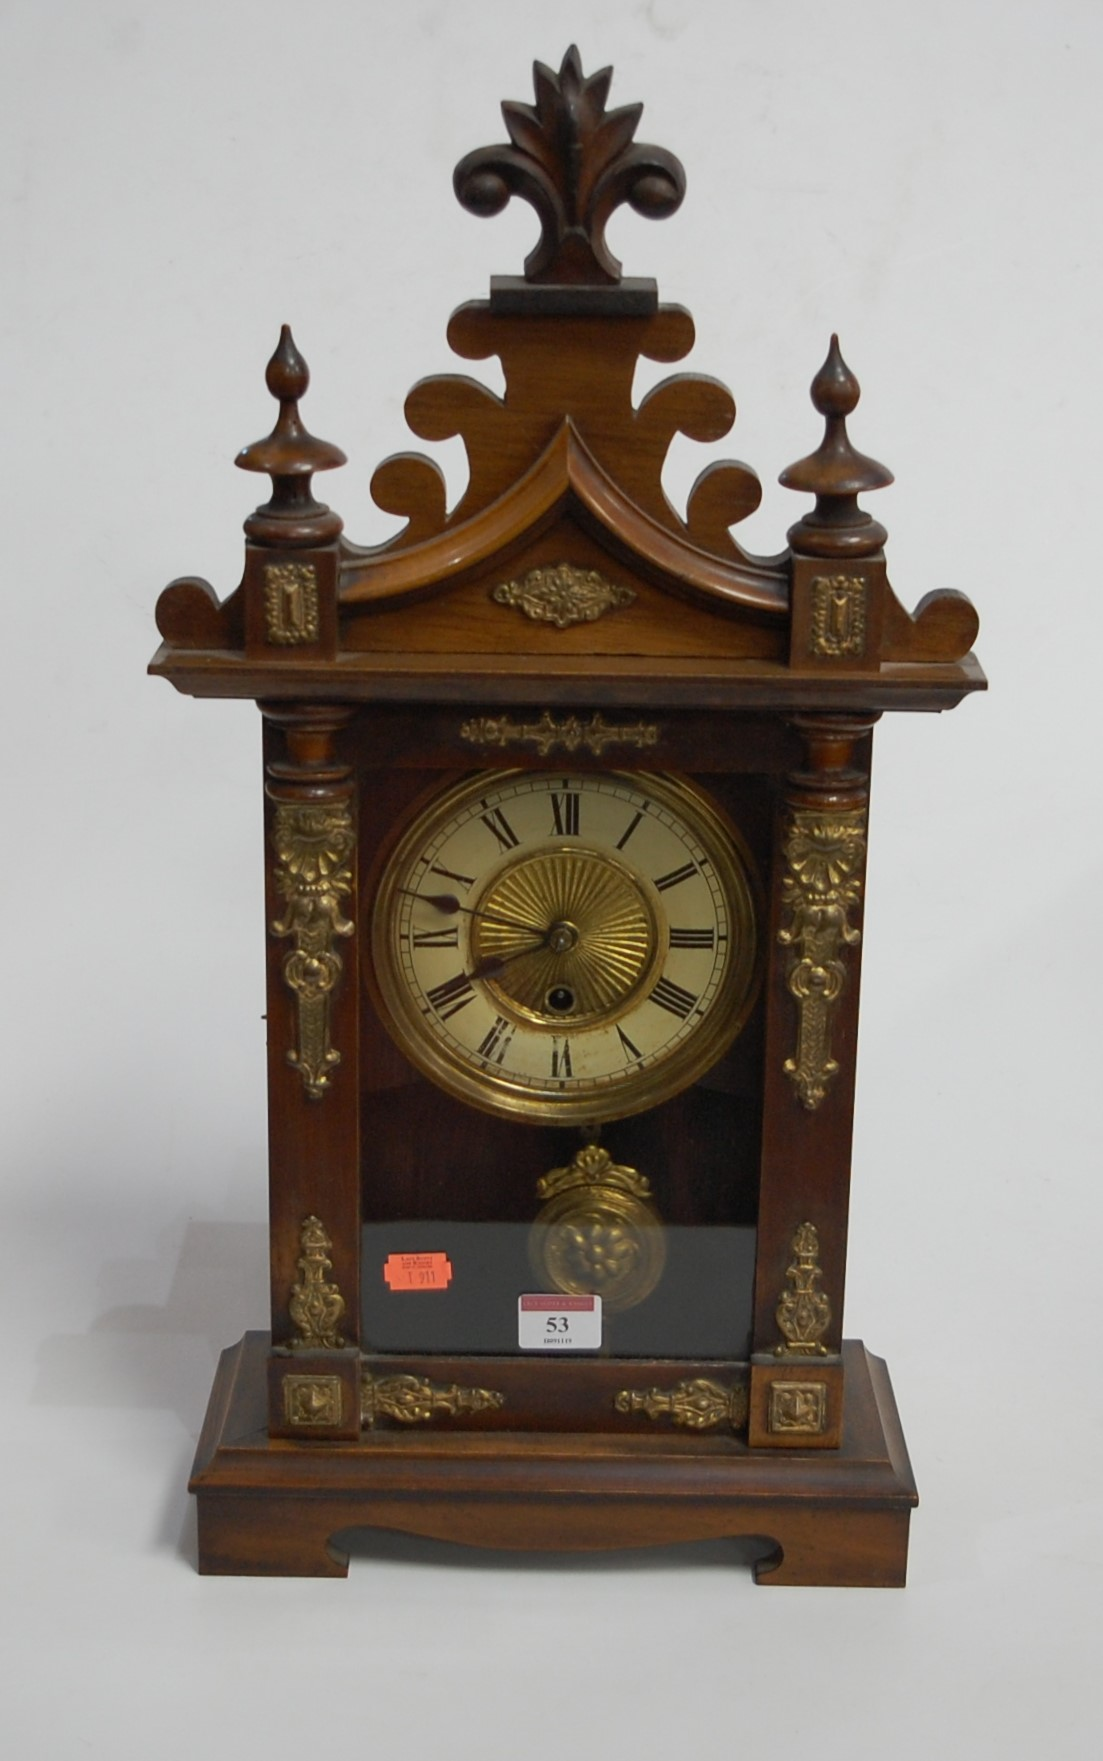 Lot 53 - A late 19th century continental walnut cased mantel clock, having enamelled chapter ring, with Roman